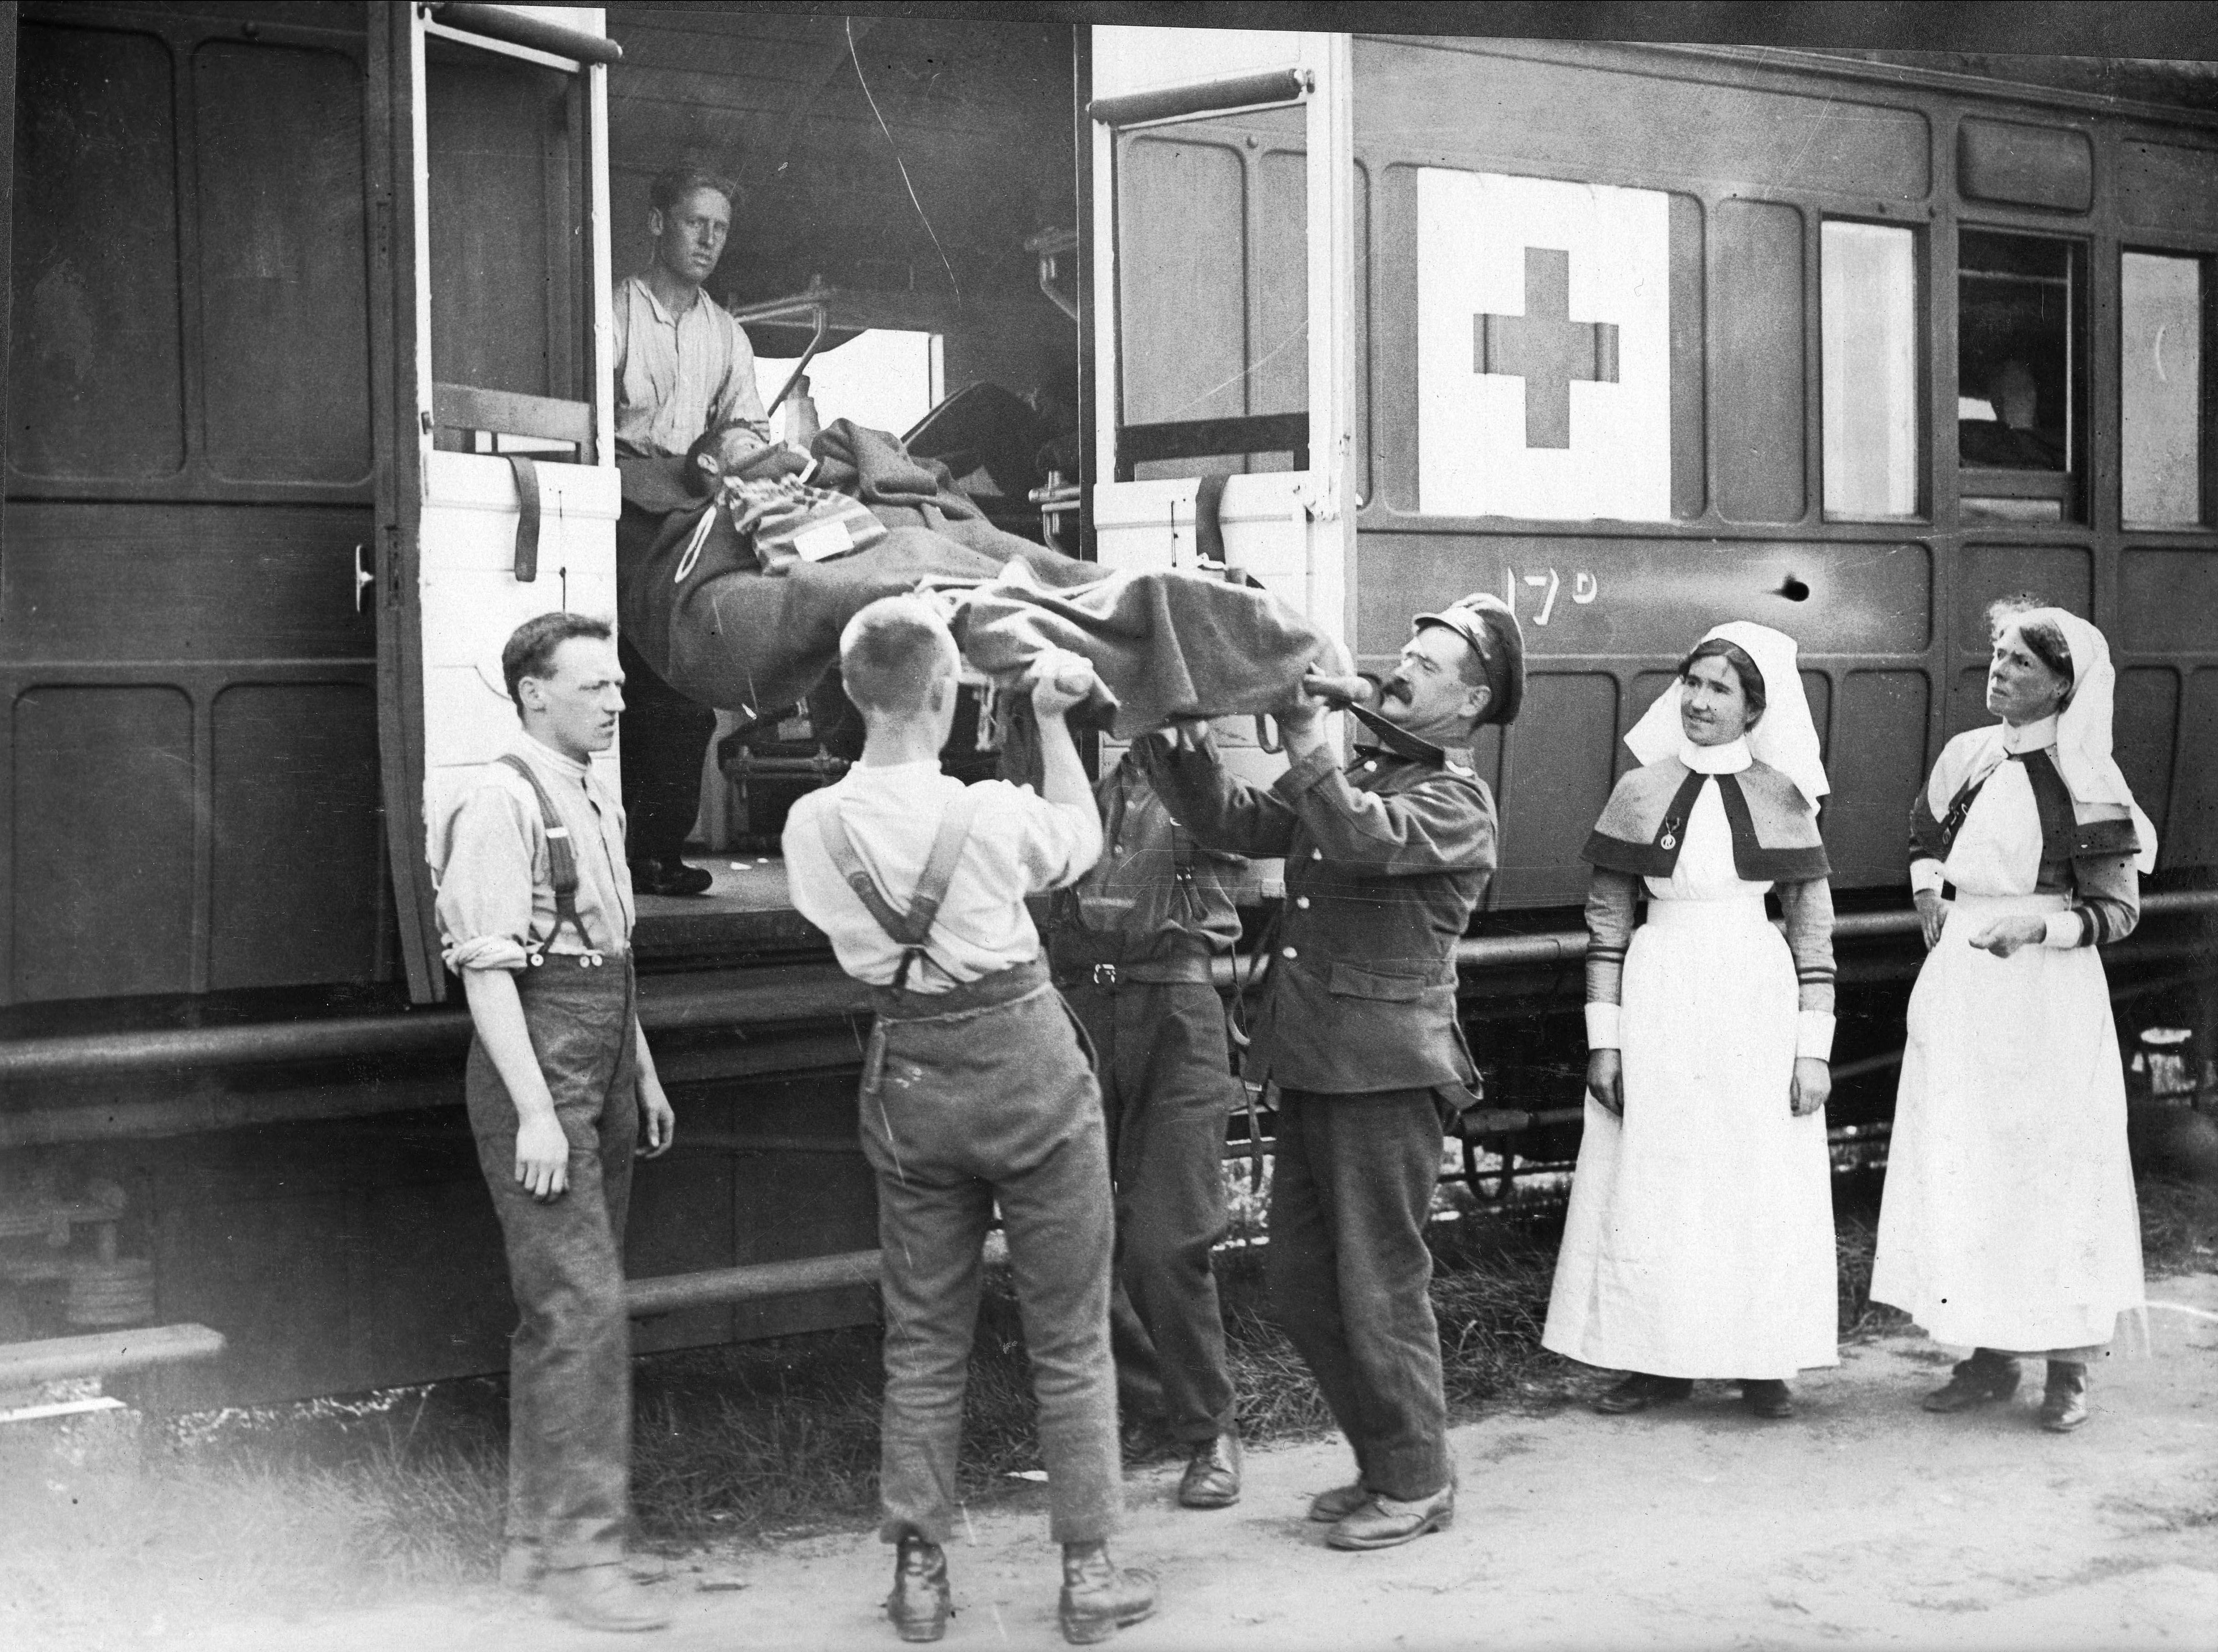 A wounded soldier on a stretcher is loaded on to train 17 by men and women in the friends ambulance unit